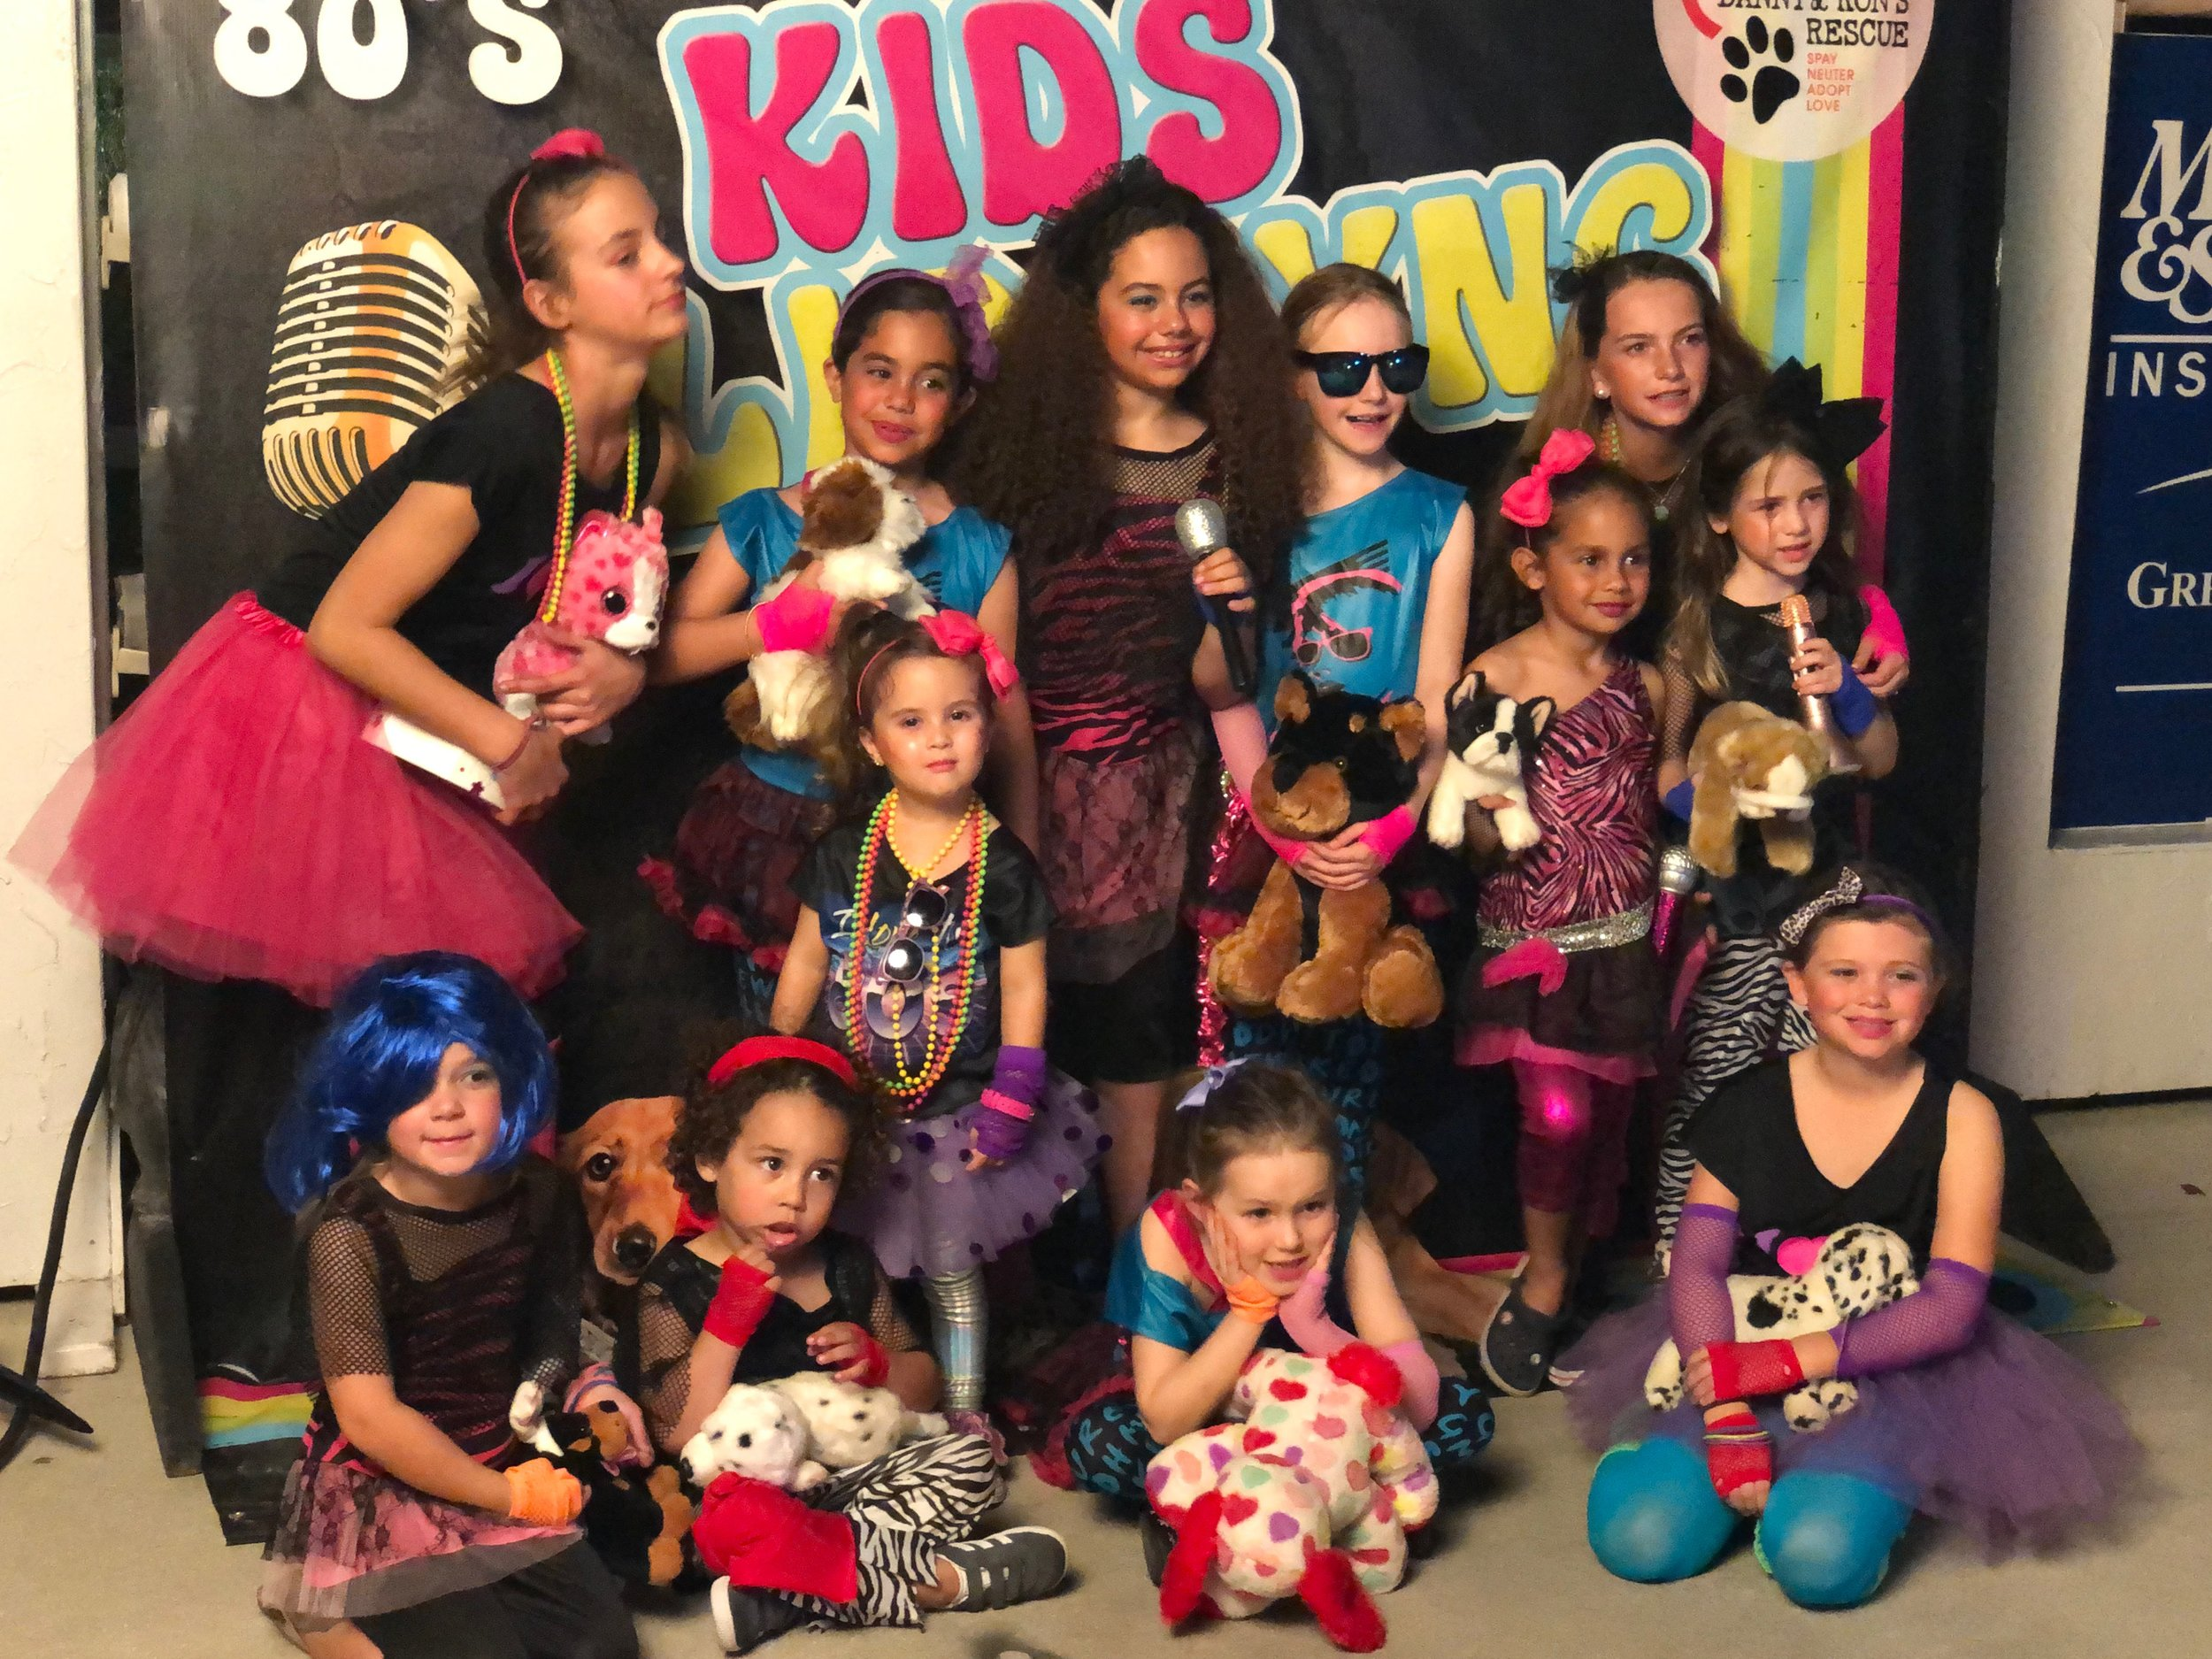 The 11th Annual Kids Lip Synch Contest